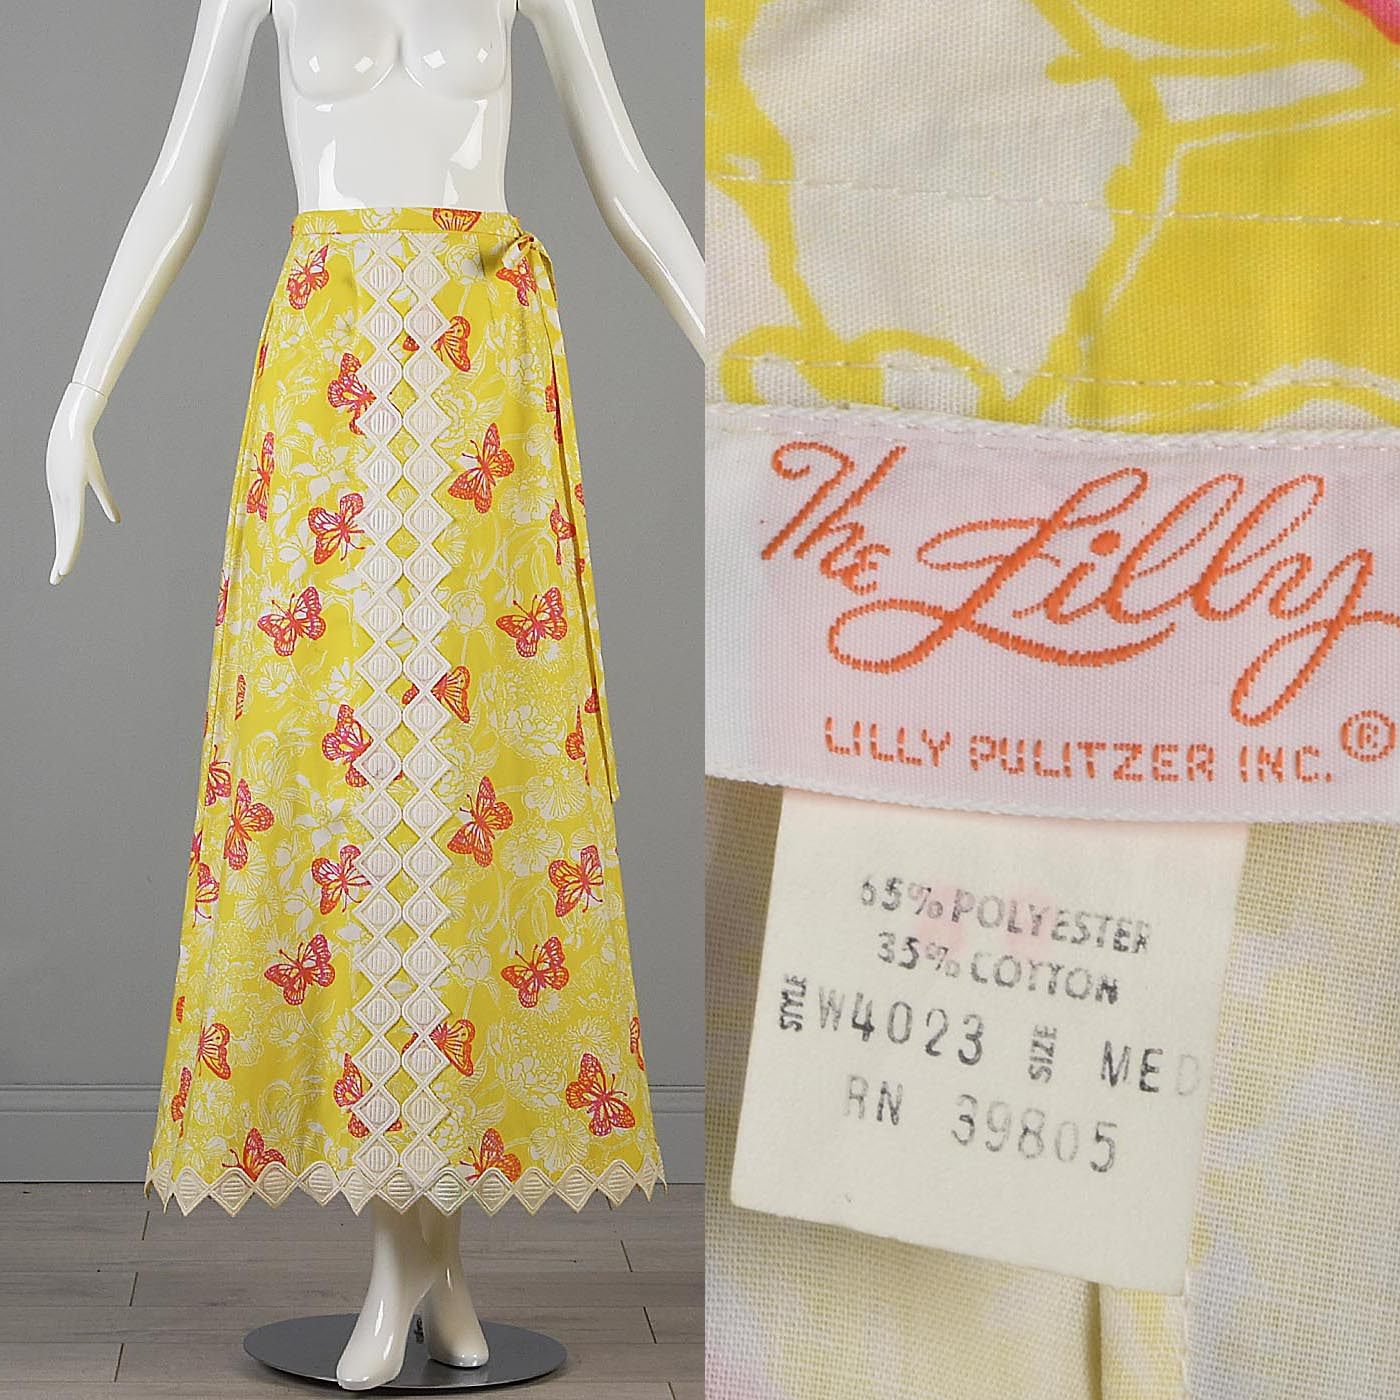 8a3e3ee6f Details about M Vintage 1970s 70s Maxi Skirt Lilly Pulitzer Yellow Pink  Butterfly Print Wrap